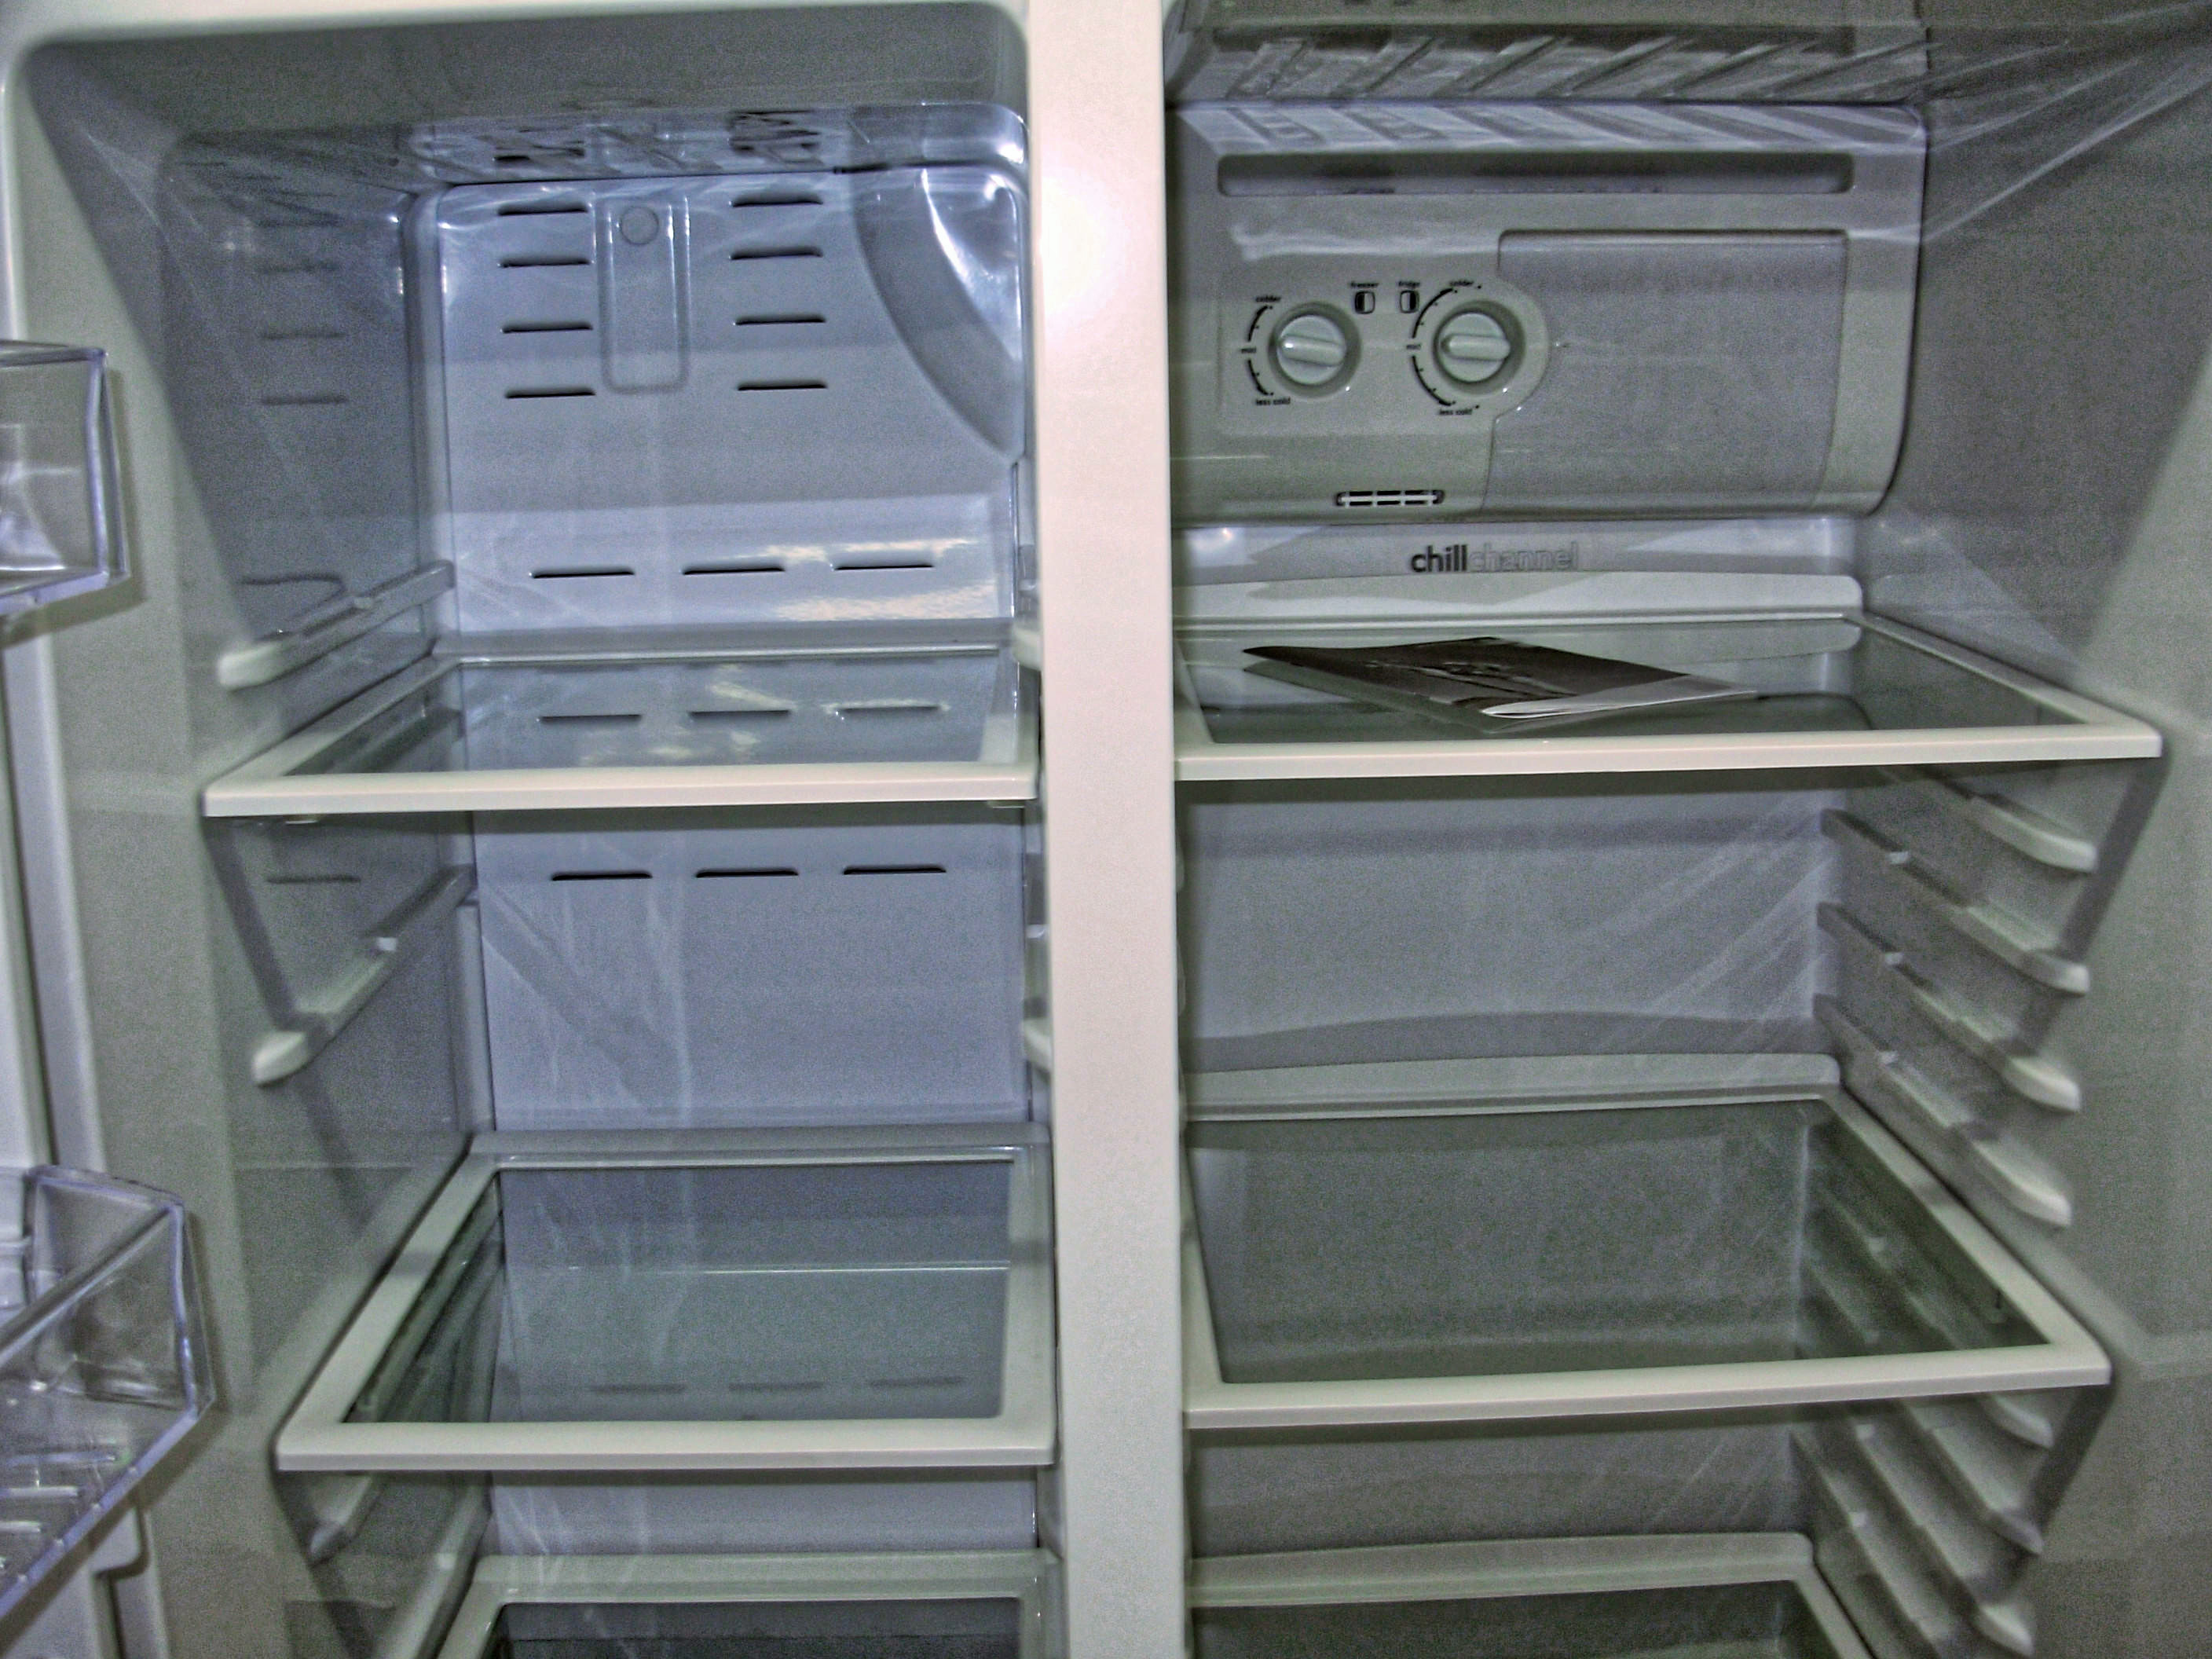 This should be Fridge-2.jpeg.  Is it missing?